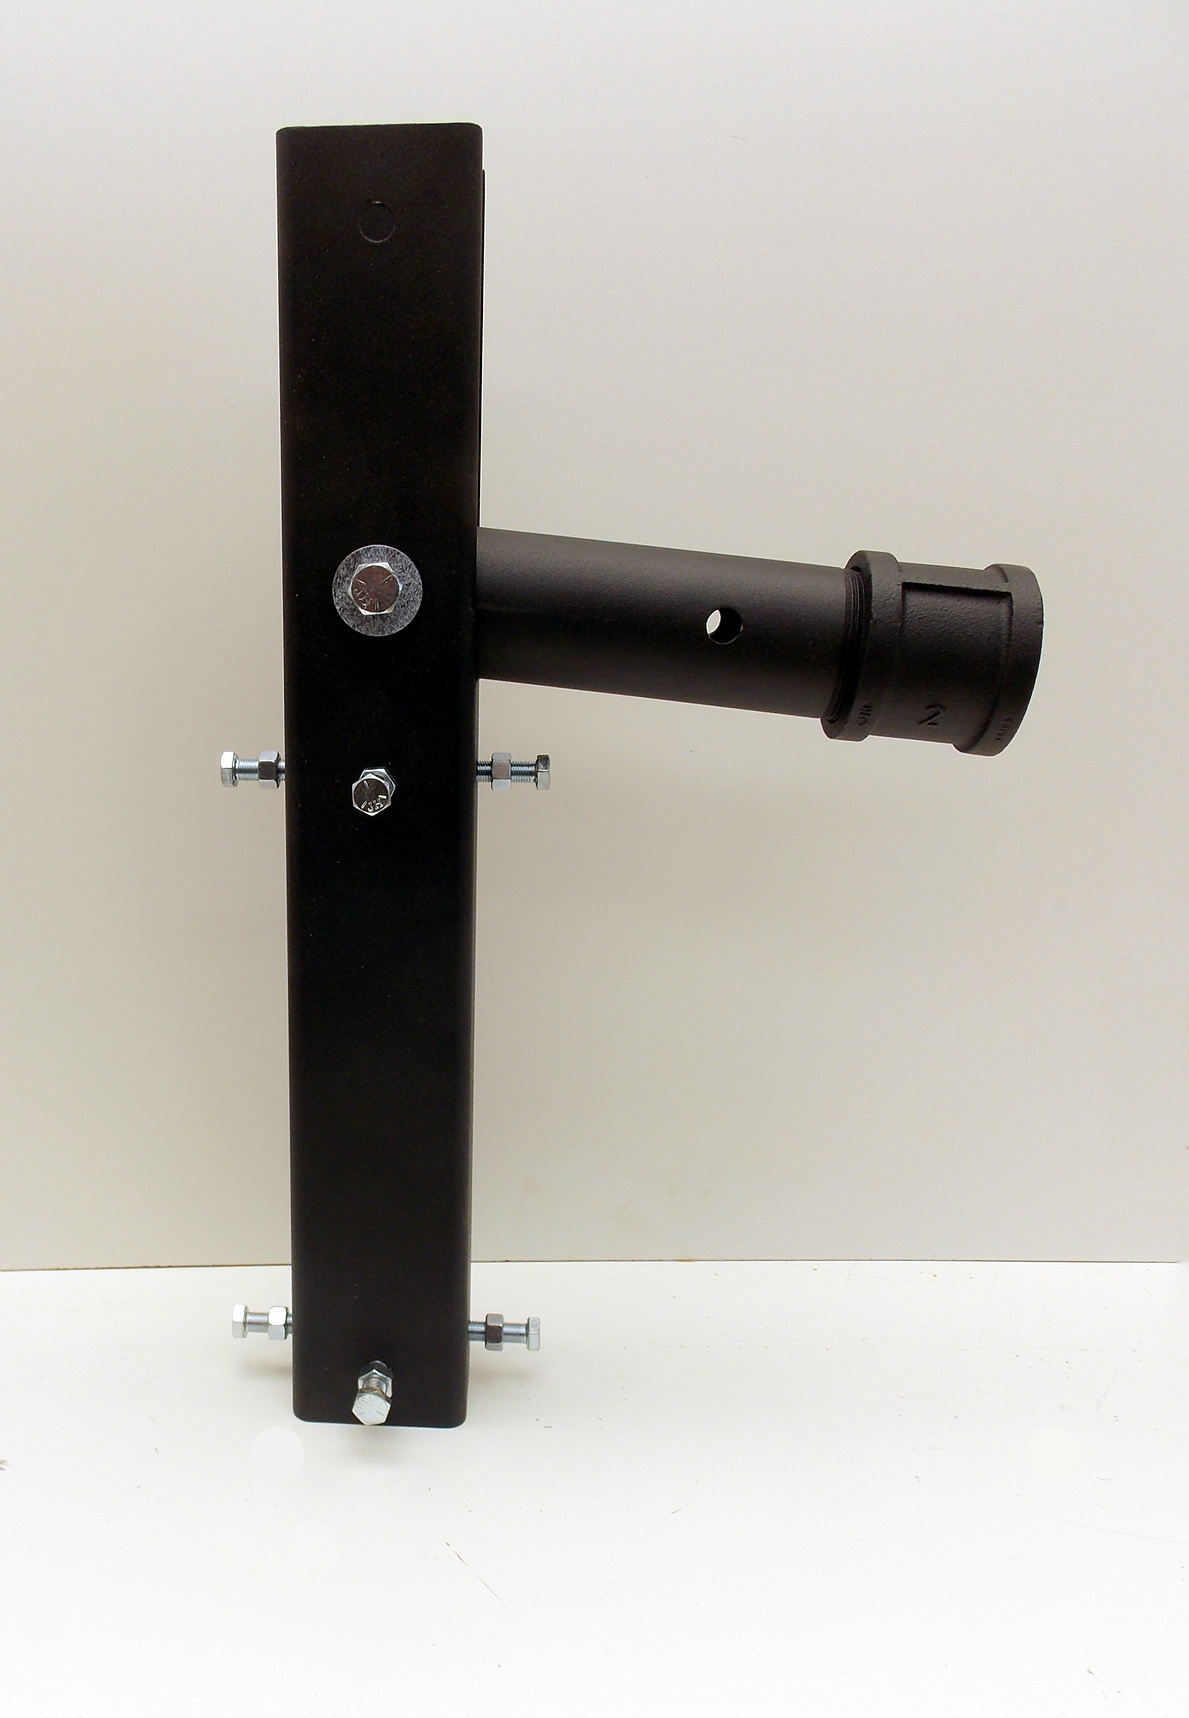 Easy-Up Swivel Mounting Bracket for a Steel Pole Mounted Bat House